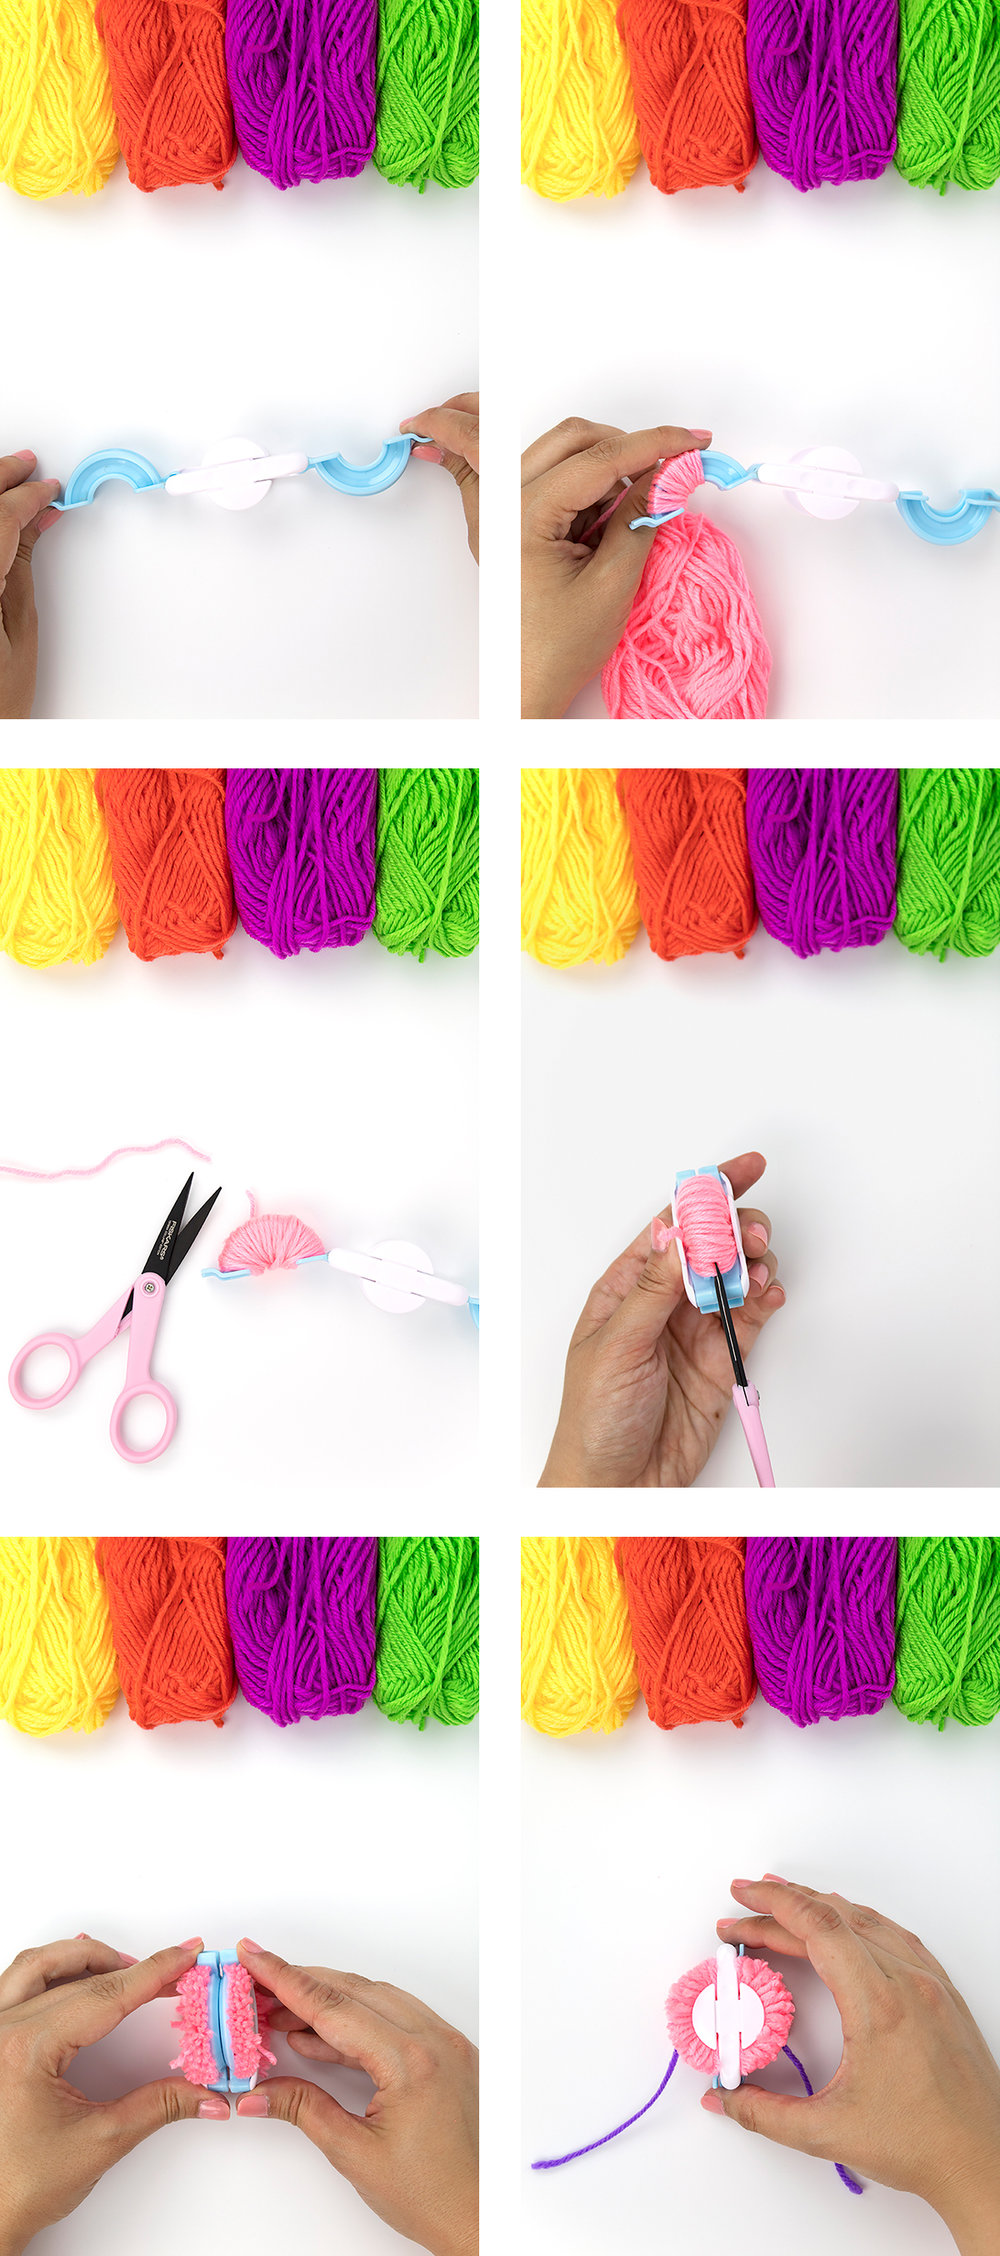 These pom pom collars are so cute, even cats can't help but love them! They're easy to make and fun to wear, so grab your pom-pom maker and your yarn. We're about to get crafty! Click for the full DIY.